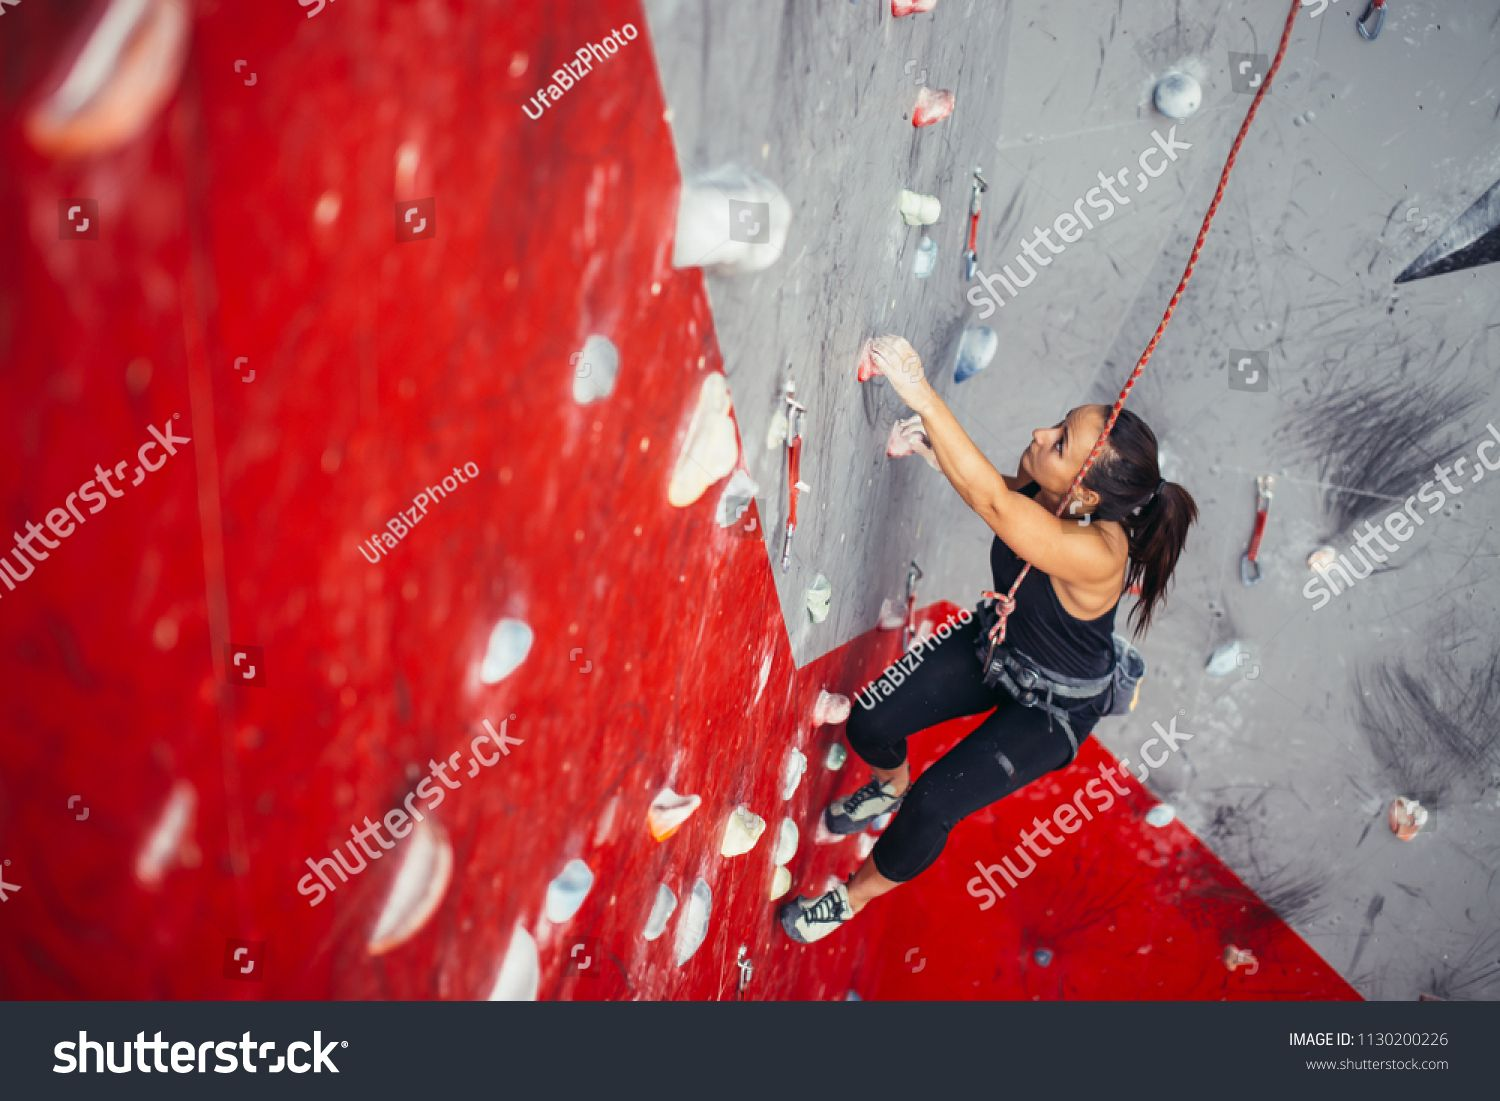 Young fitness woman doing professional bouldering in climbing gym indoors #Ad , #Affiliate, #woman#p...